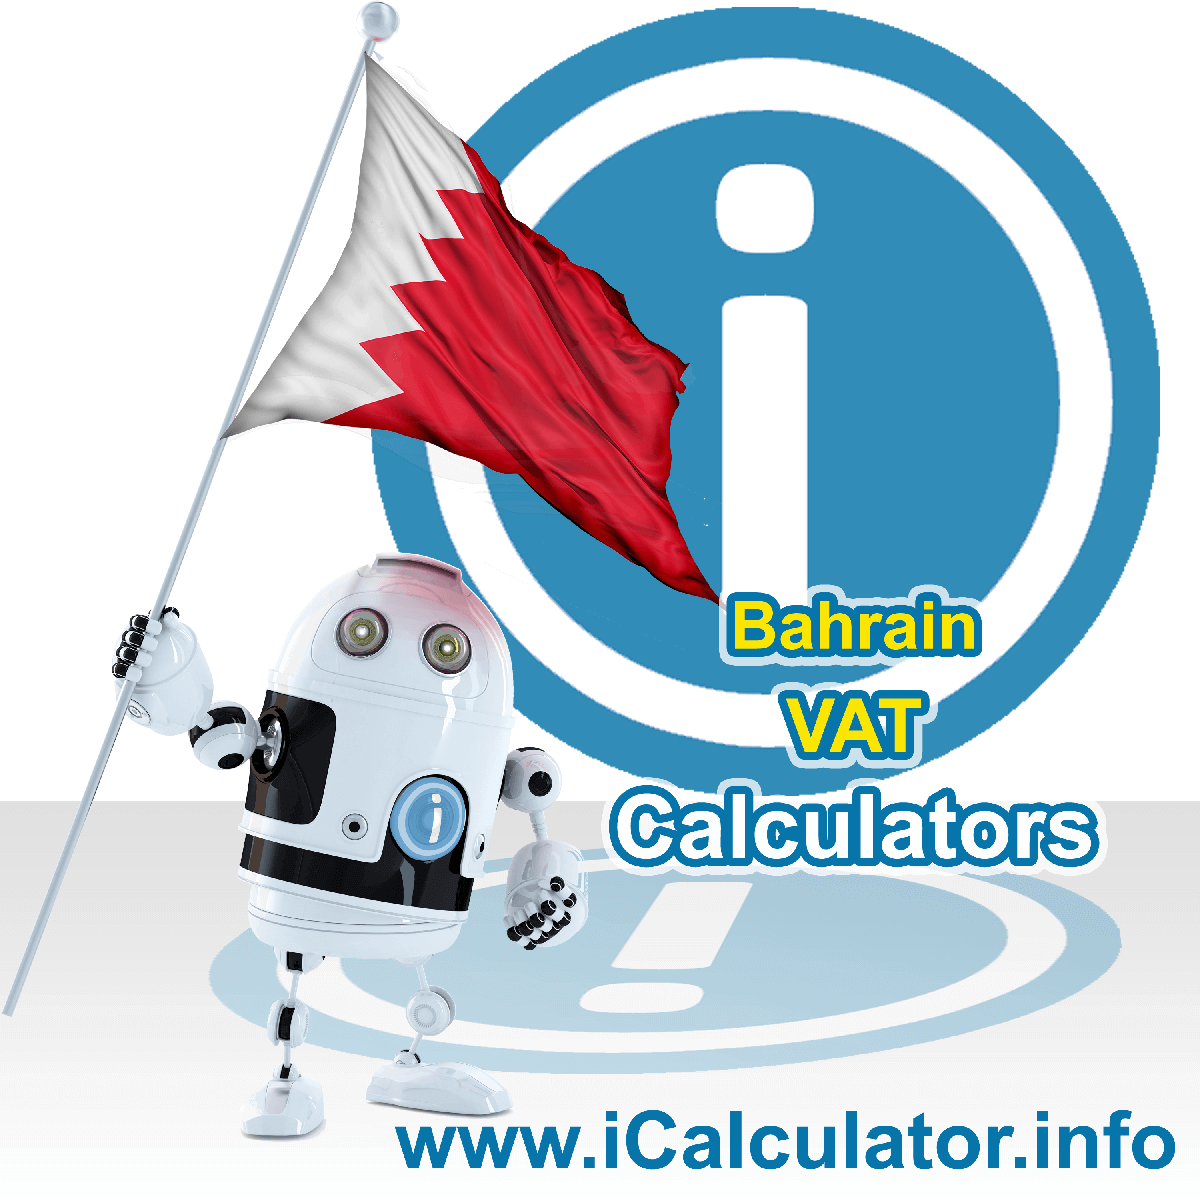 Bahrain VAT Calculator. This image shows the Bahrain flag and information relating to the VAT formula used for calculating Value Added Tax in Bahrain using the Bahrain VAT Calculator in 2020